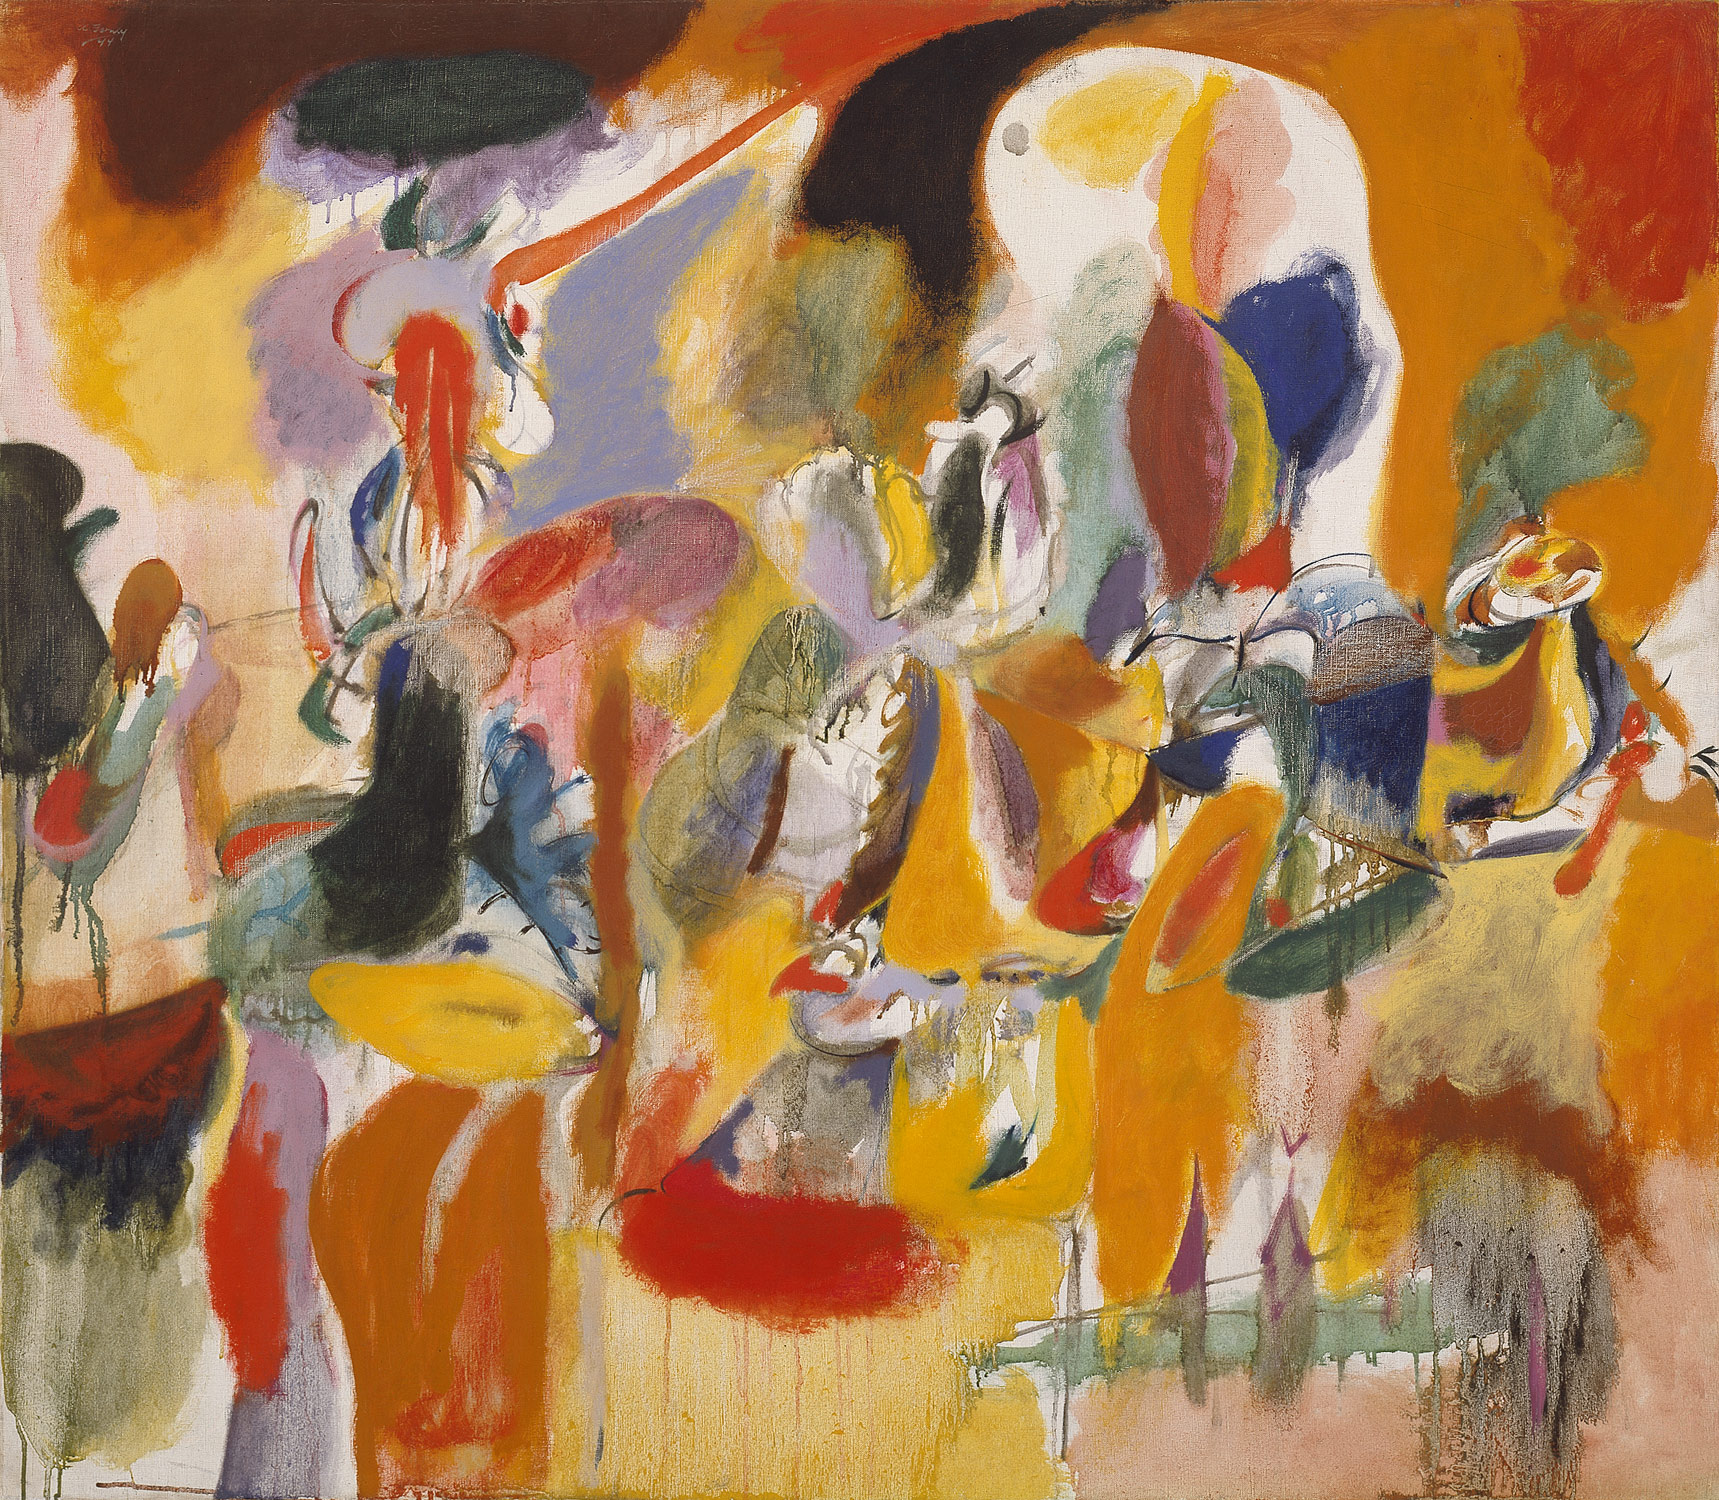 2_Arshile Gorky, Water of the Flowery Mill, 1944.jpg